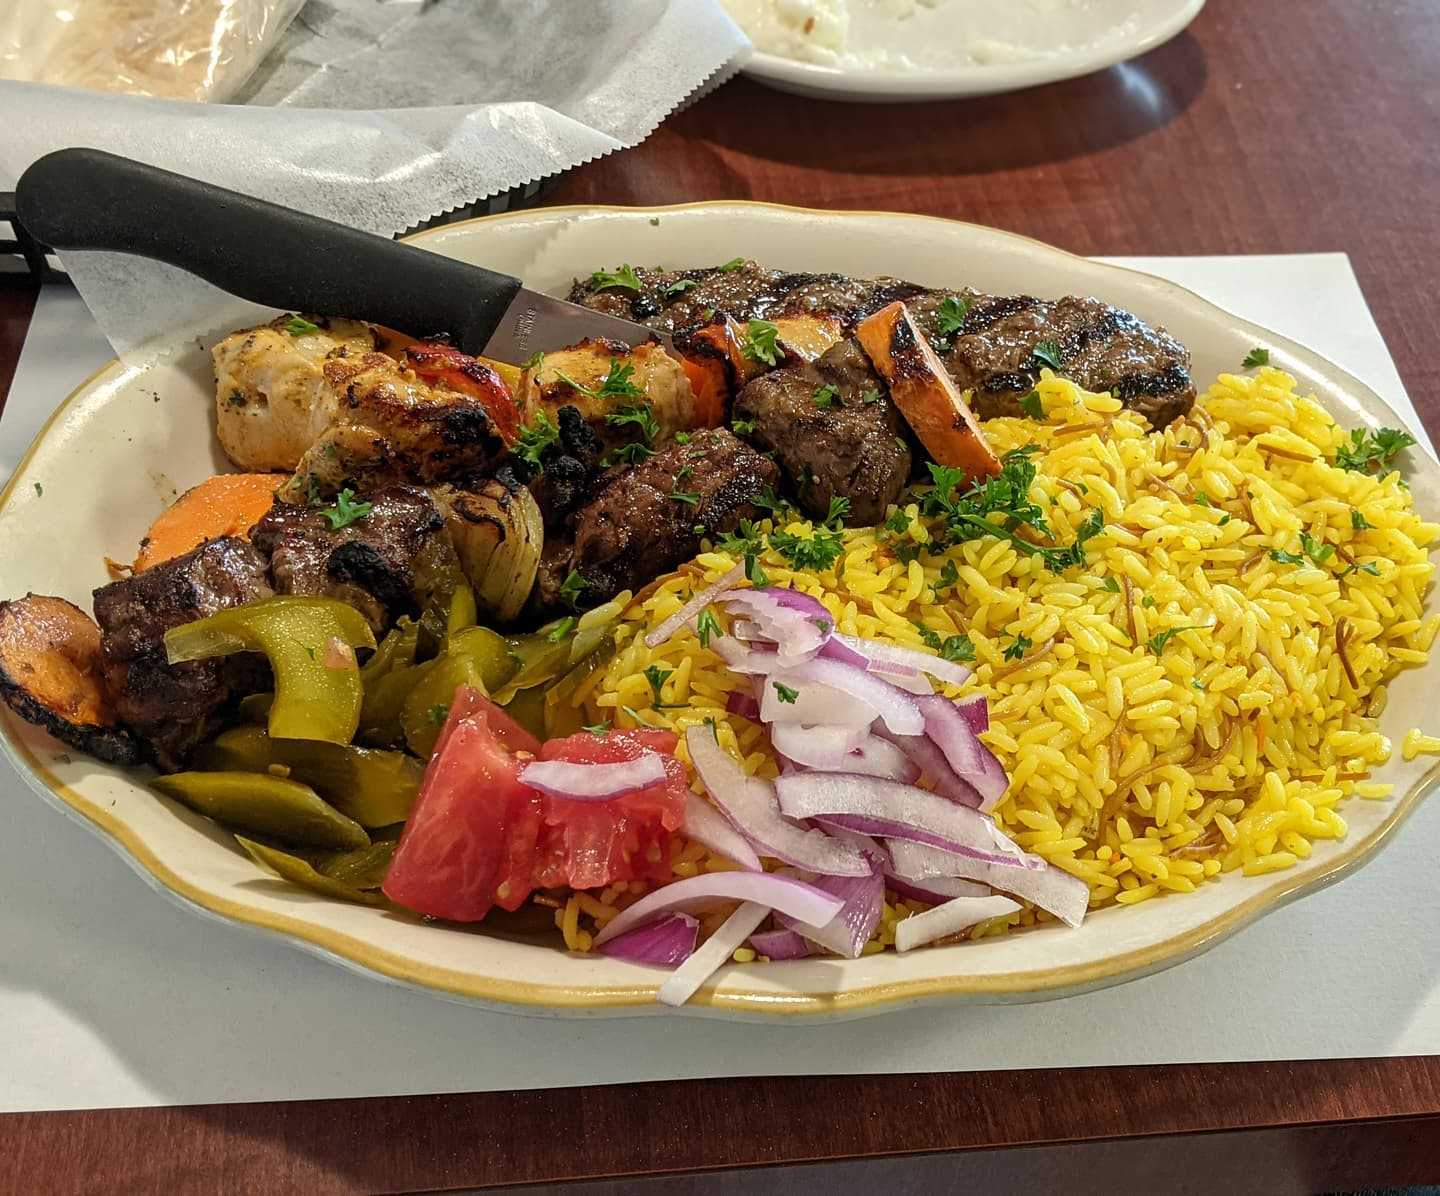 Completely neglected to post last night's #foodporn. Shish combo at Taza Fresh Grill. Absolutely delicious #detroit